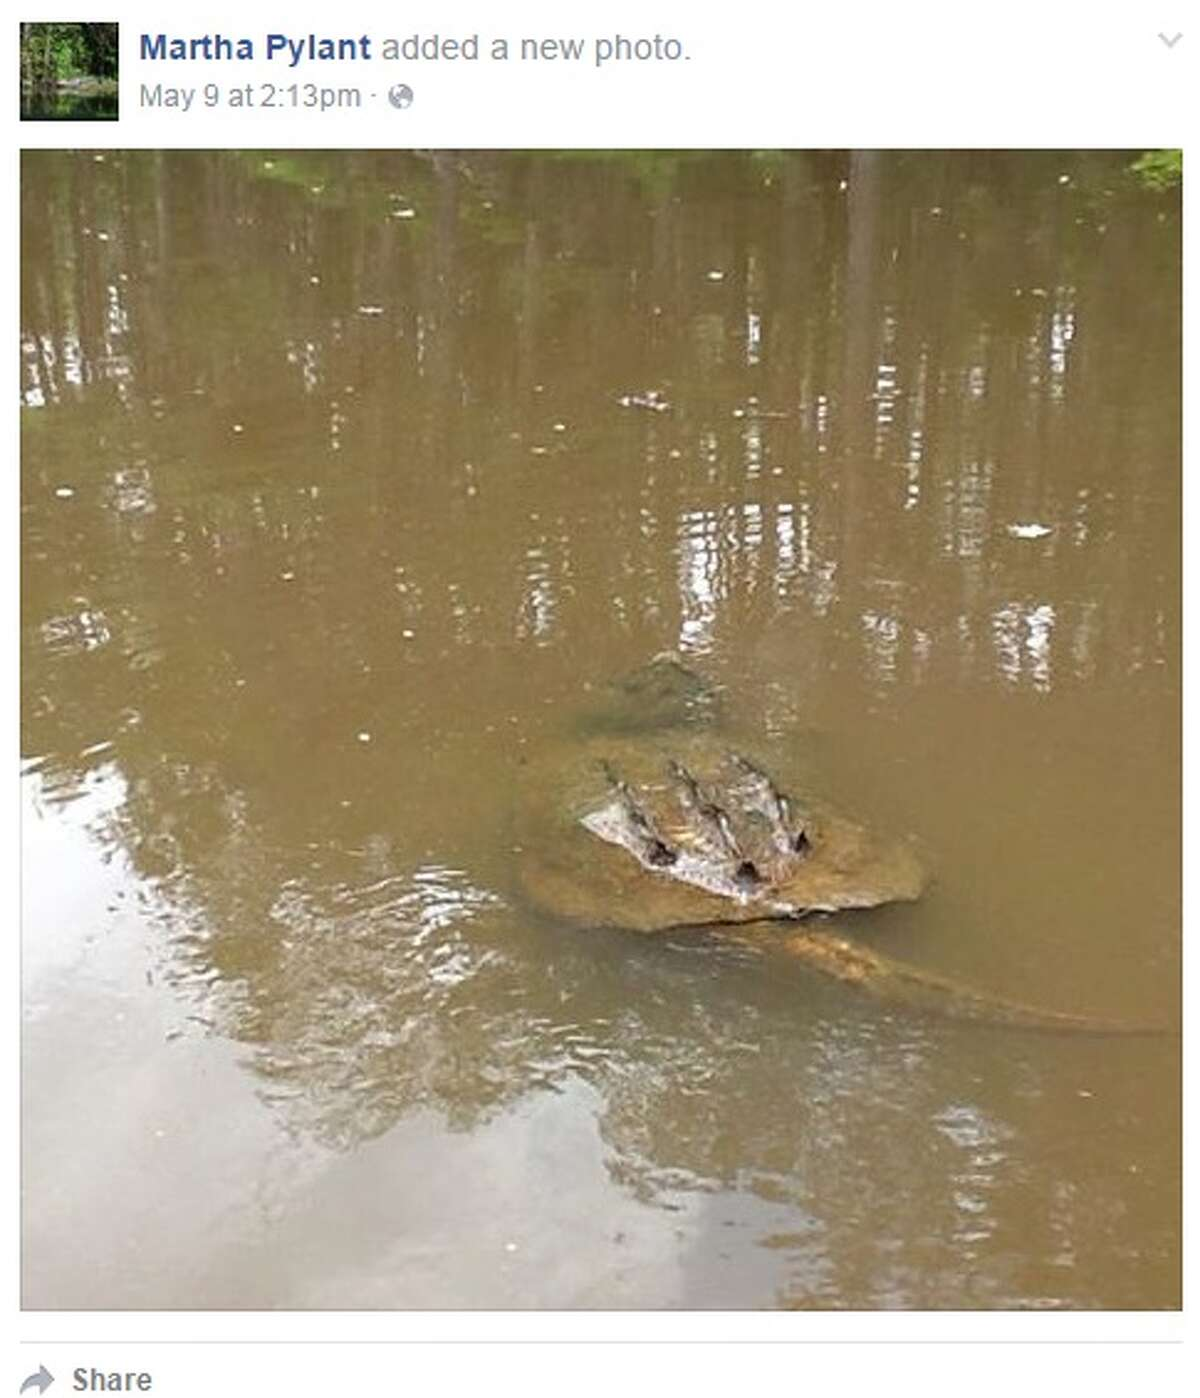 """Caddo Lake, in East Texas, has been a popular spot for """"monster"""" turtle sightings throughout May 2016, according to multiple social media posts."""